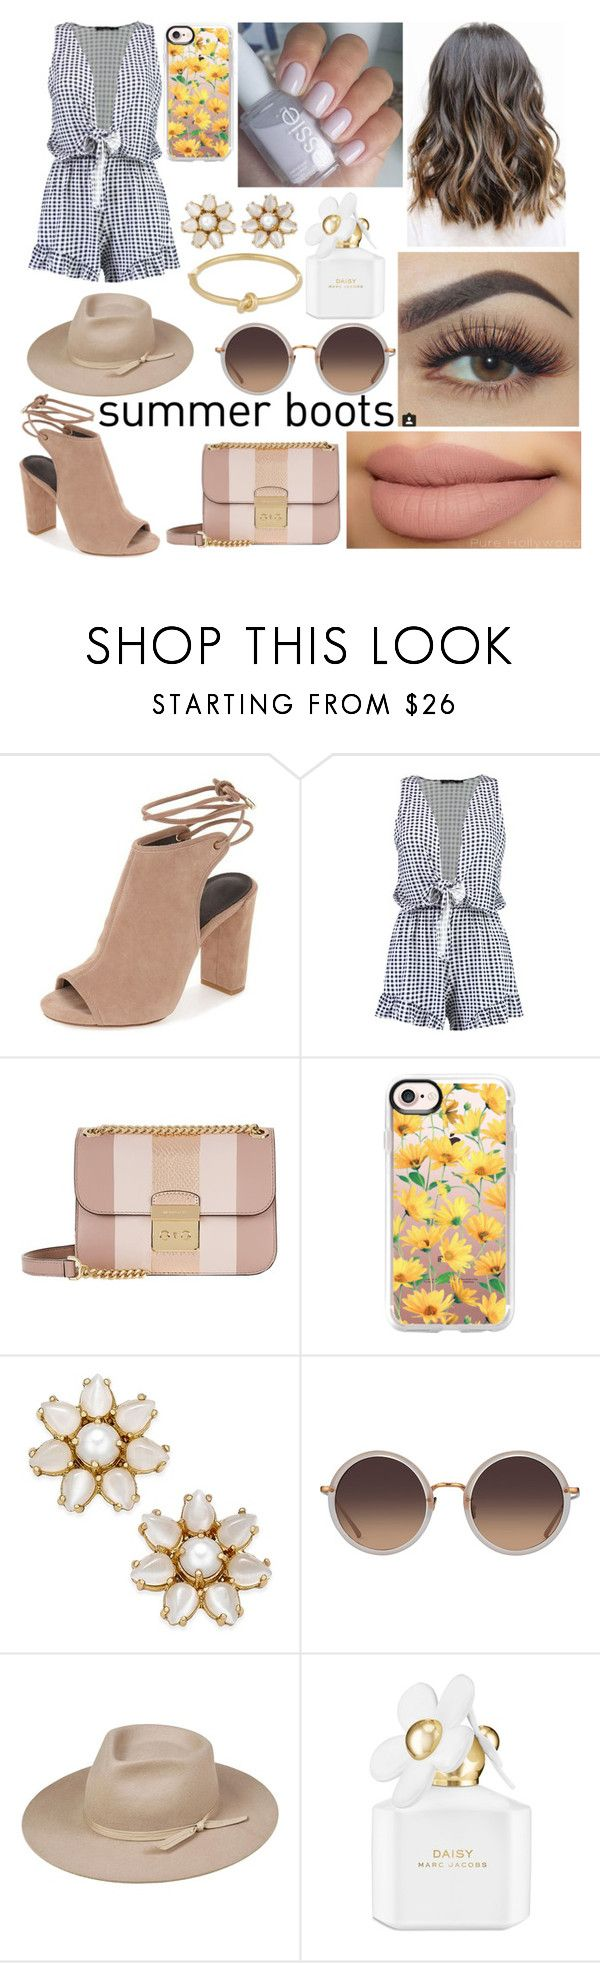 """Walk This Way: Summer Booties"" by emily5302 ❤ liked on Polyvore featuring Boohoo, Michael Kors, Casetify, Kate Spade, Linda Farrow, Lack of Color, Marc Jacobs and summerbooties"